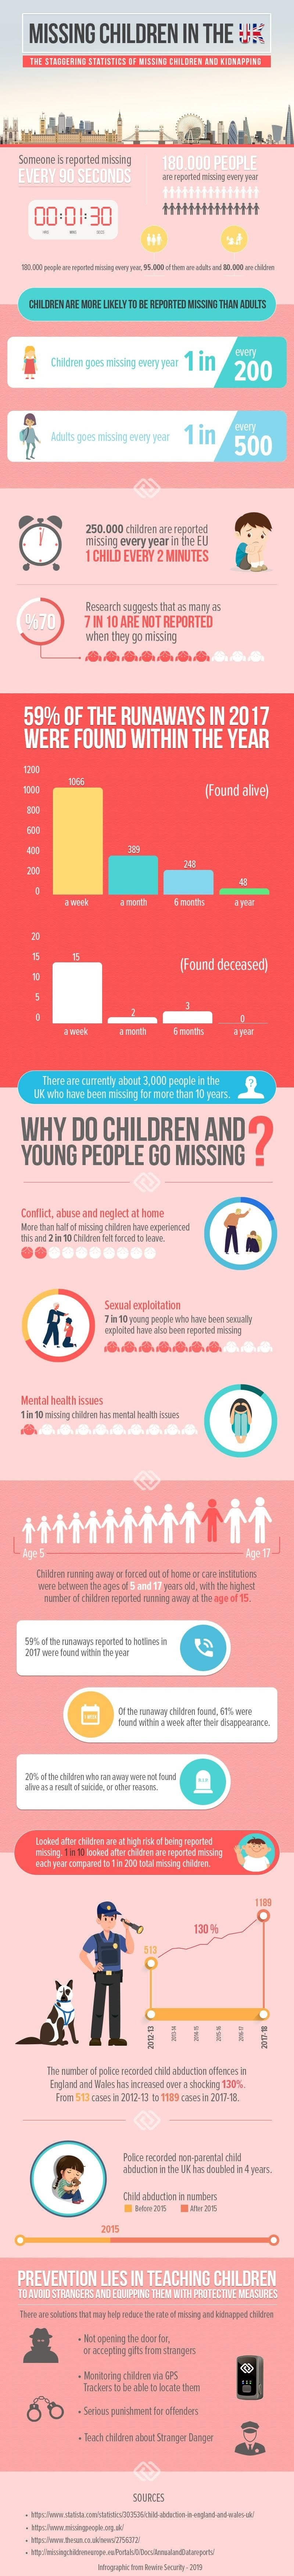 MISSING CHILDREN IN THE UK #INFOGRAPHIC